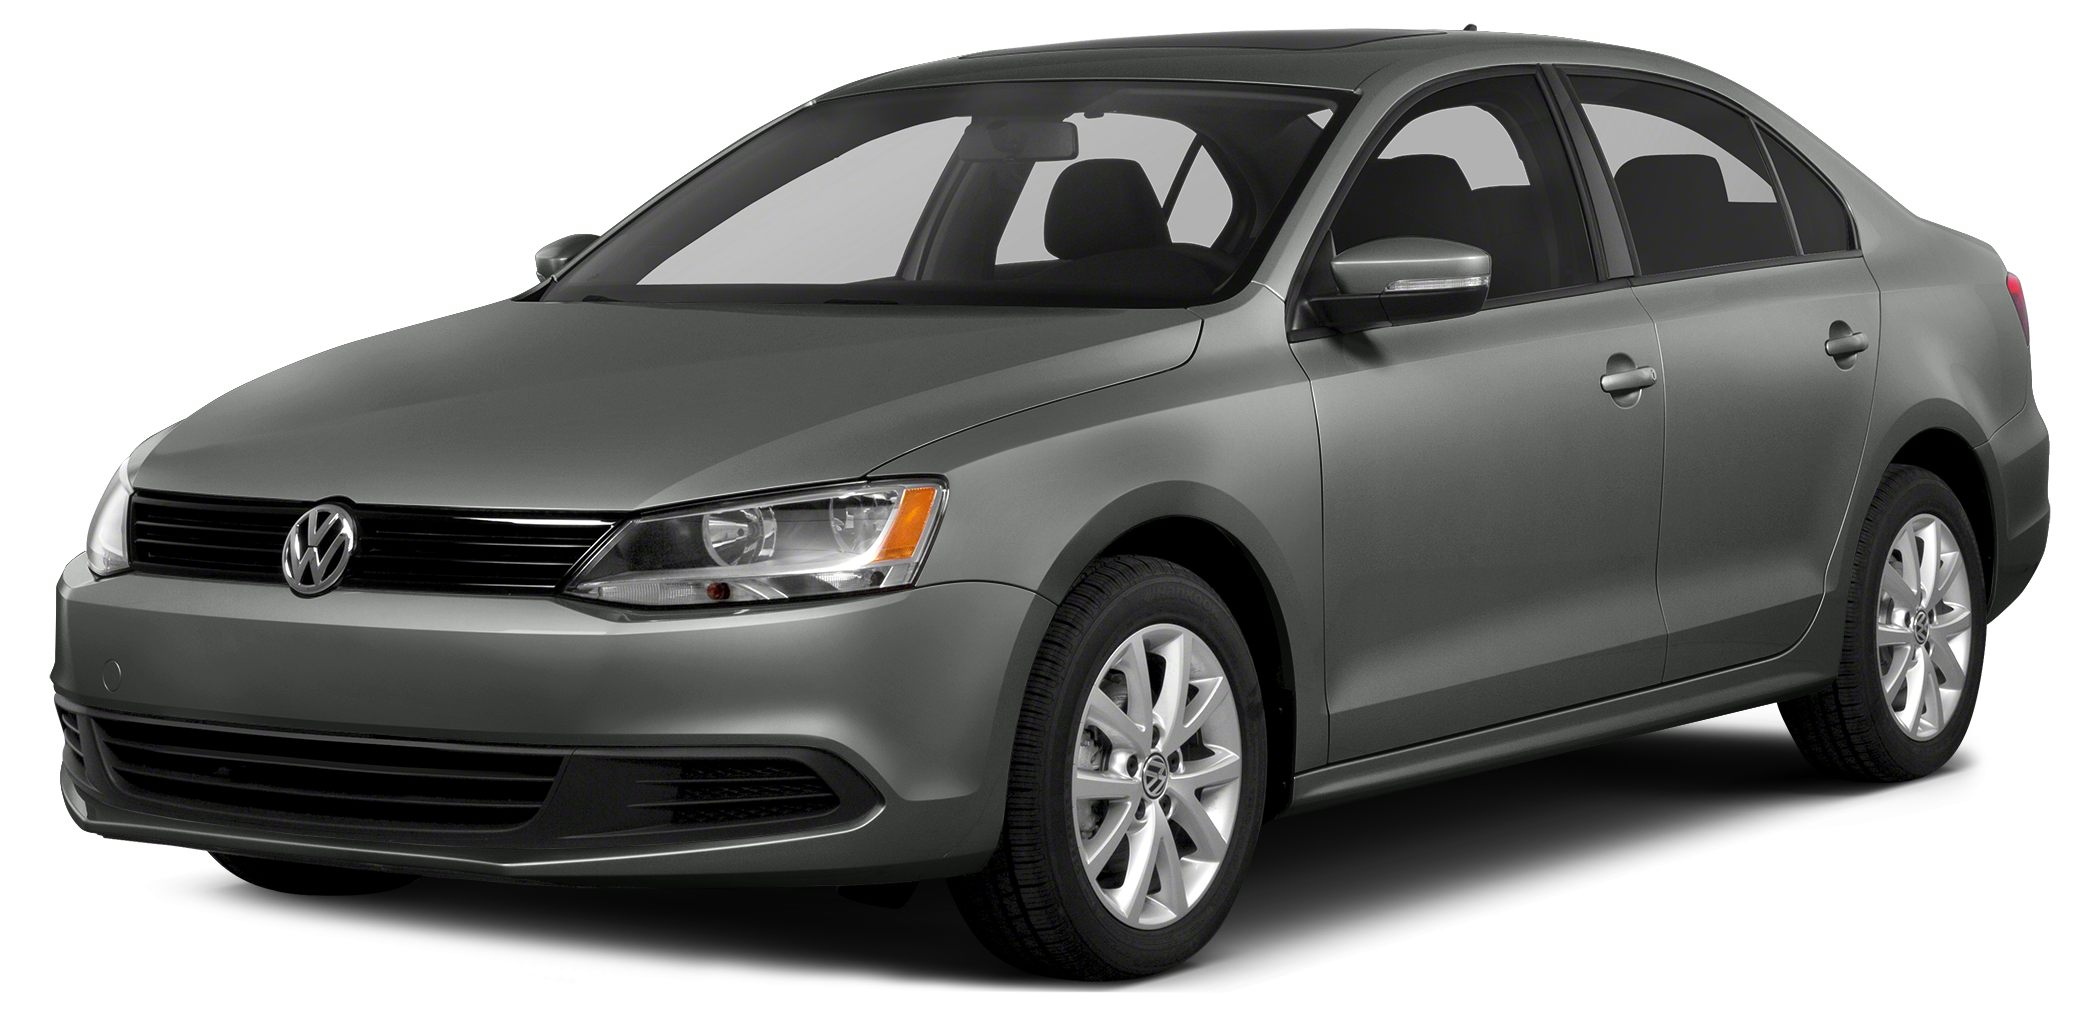 2014 Volkswagen Jetta 20 S OUR PRICESYoure probably wondering why our prices are so much lower